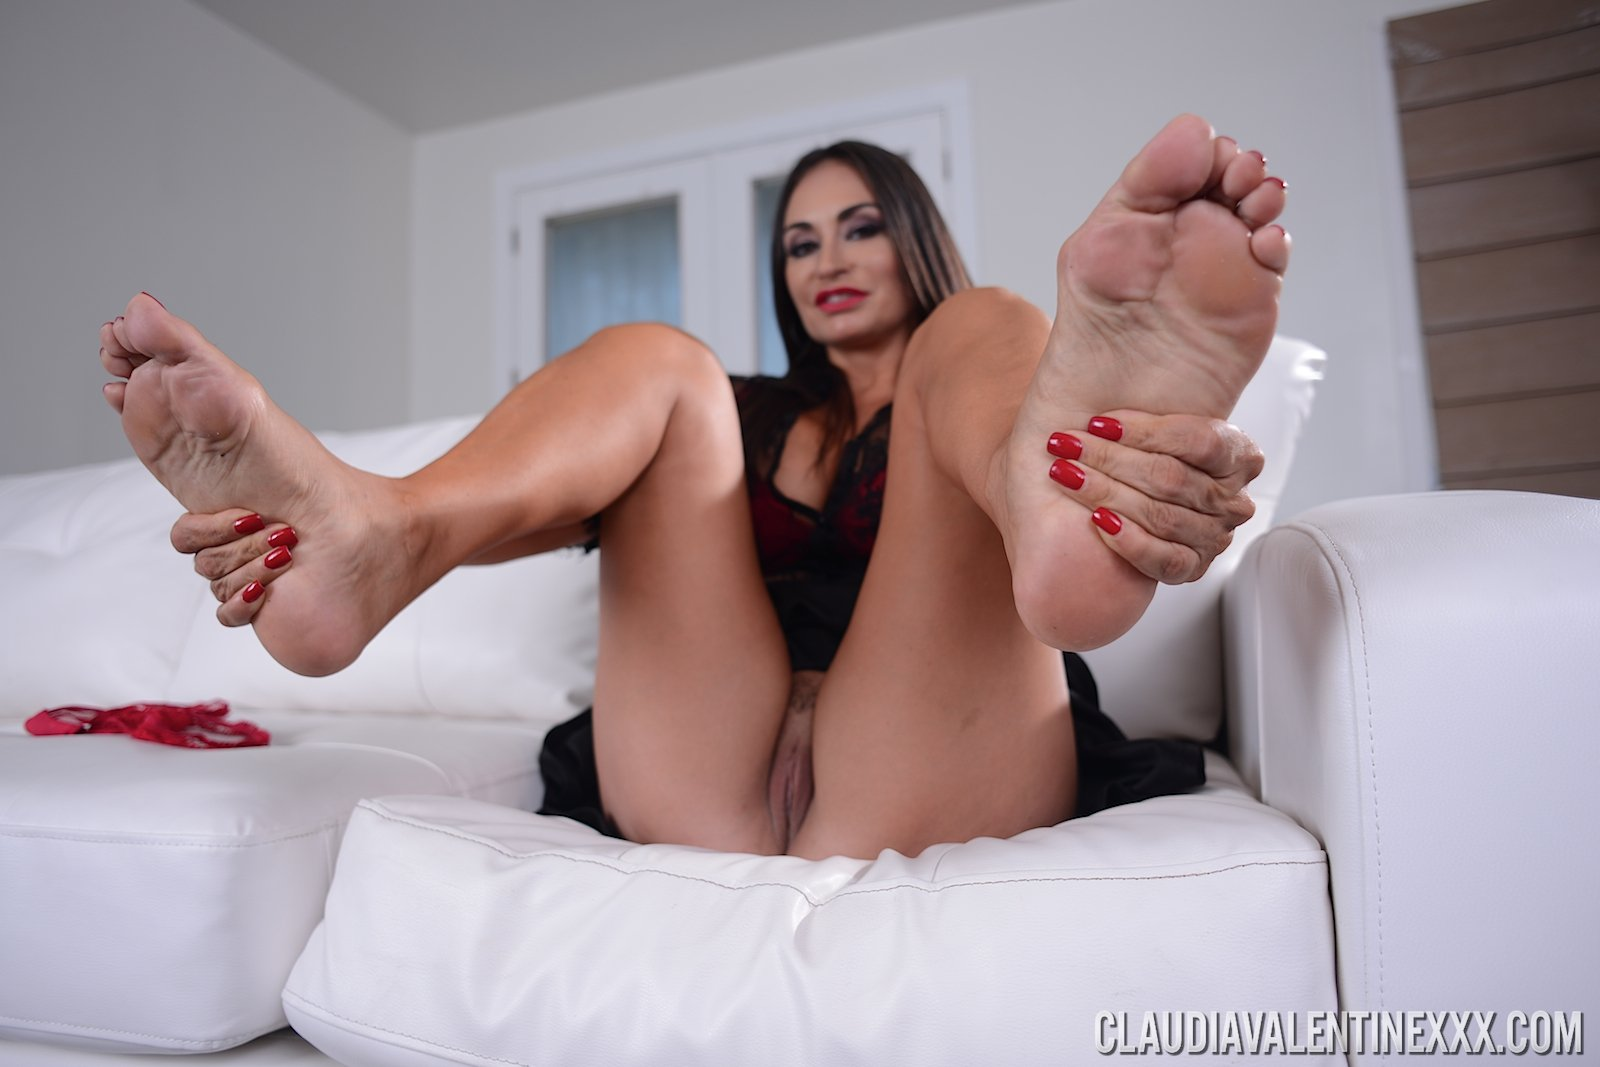 creampie-pornstars-with-ugly-feet-titty